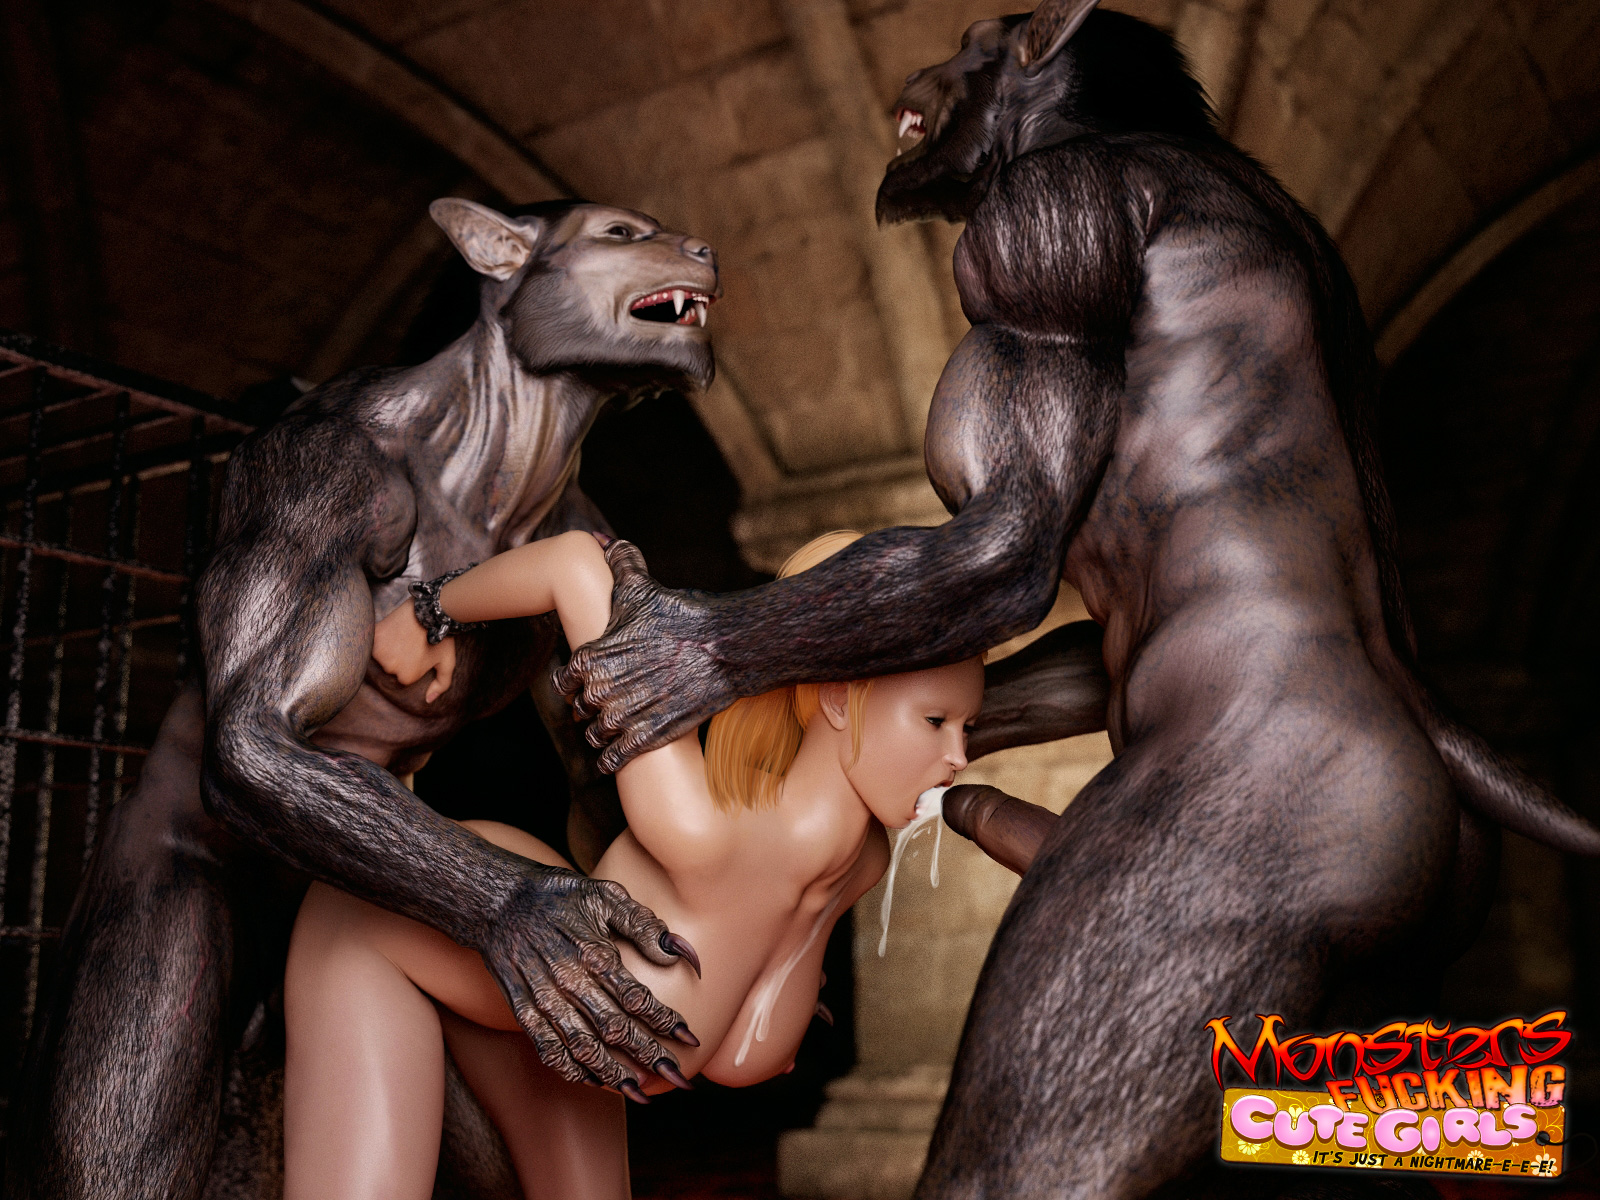 Vampire girls sex video 3gp pornos pic